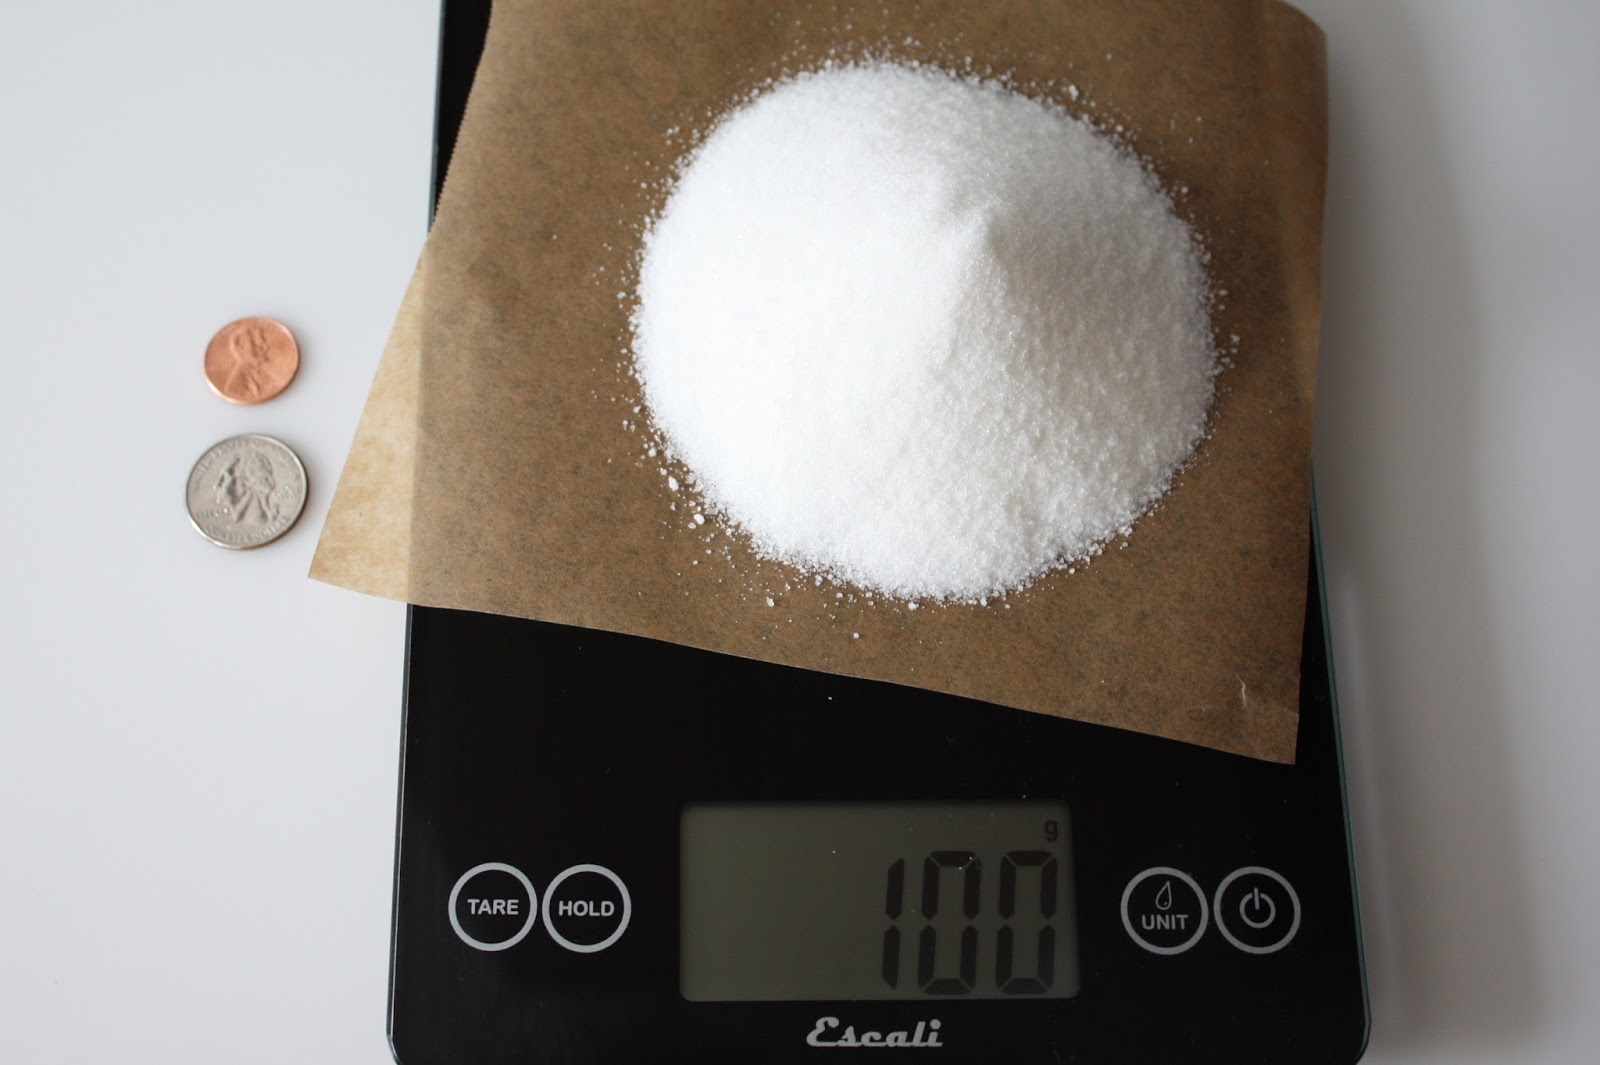 100 grams white granulated sugar on a scale with coins for visual comparison